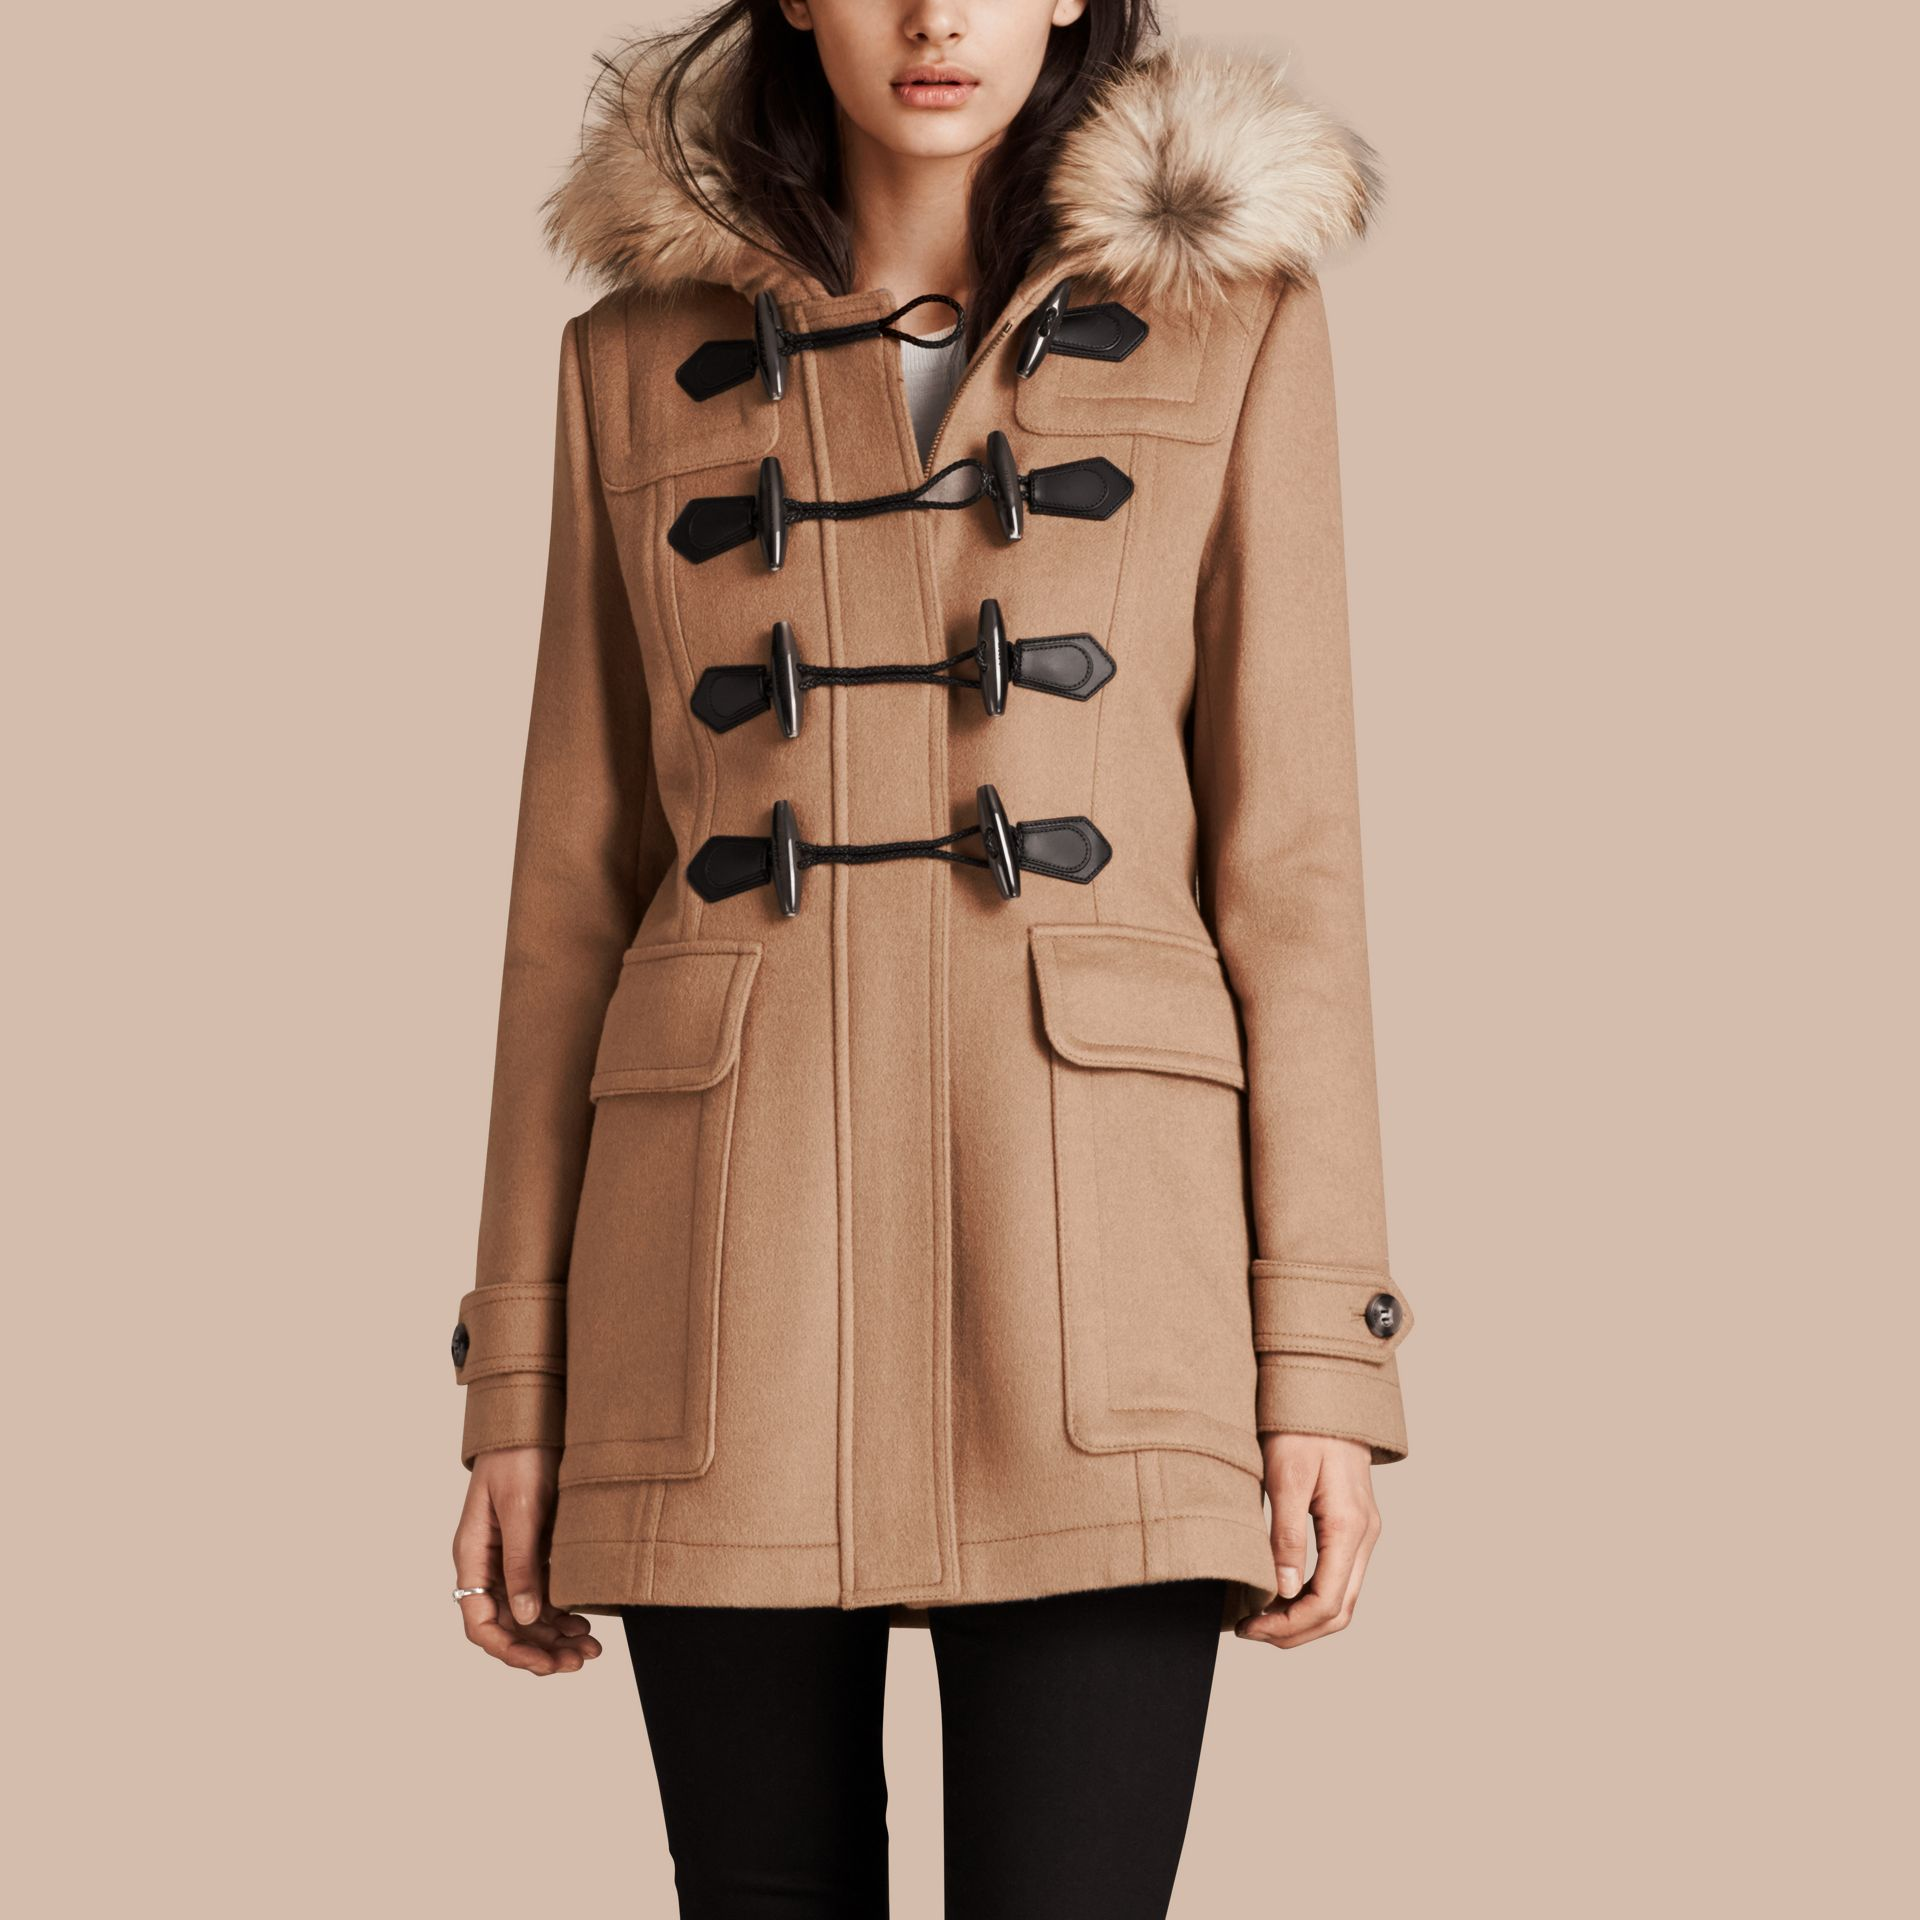 Camel Duffle-coat en laine avec bordure en fourrure amovible Camel - photo de la galerie 5